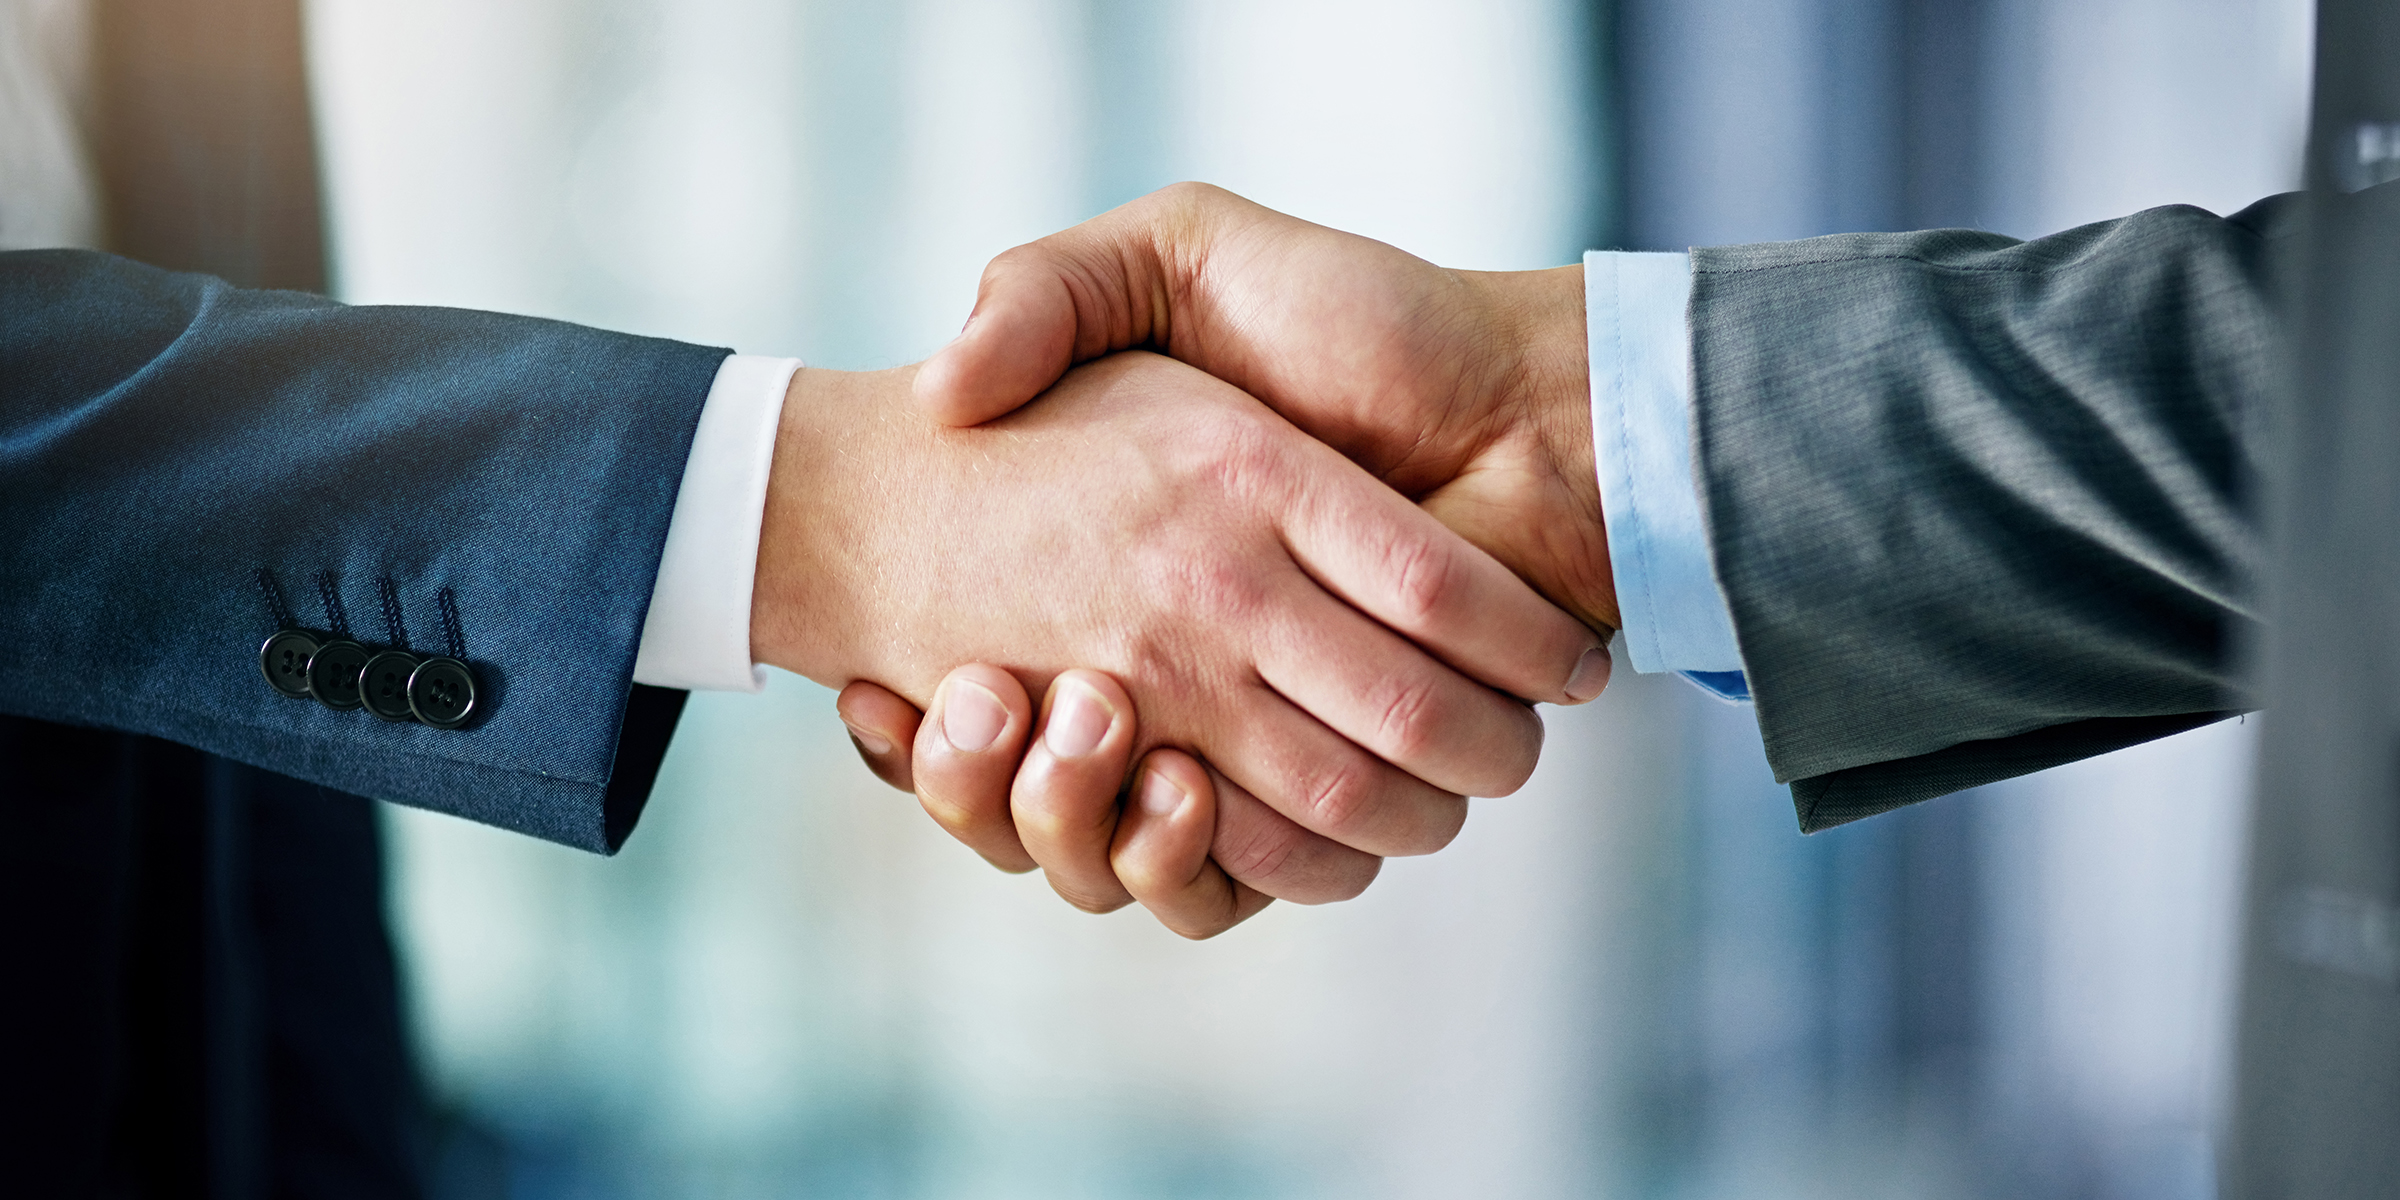 When will it be OK to shake hands? How should you greet people now?